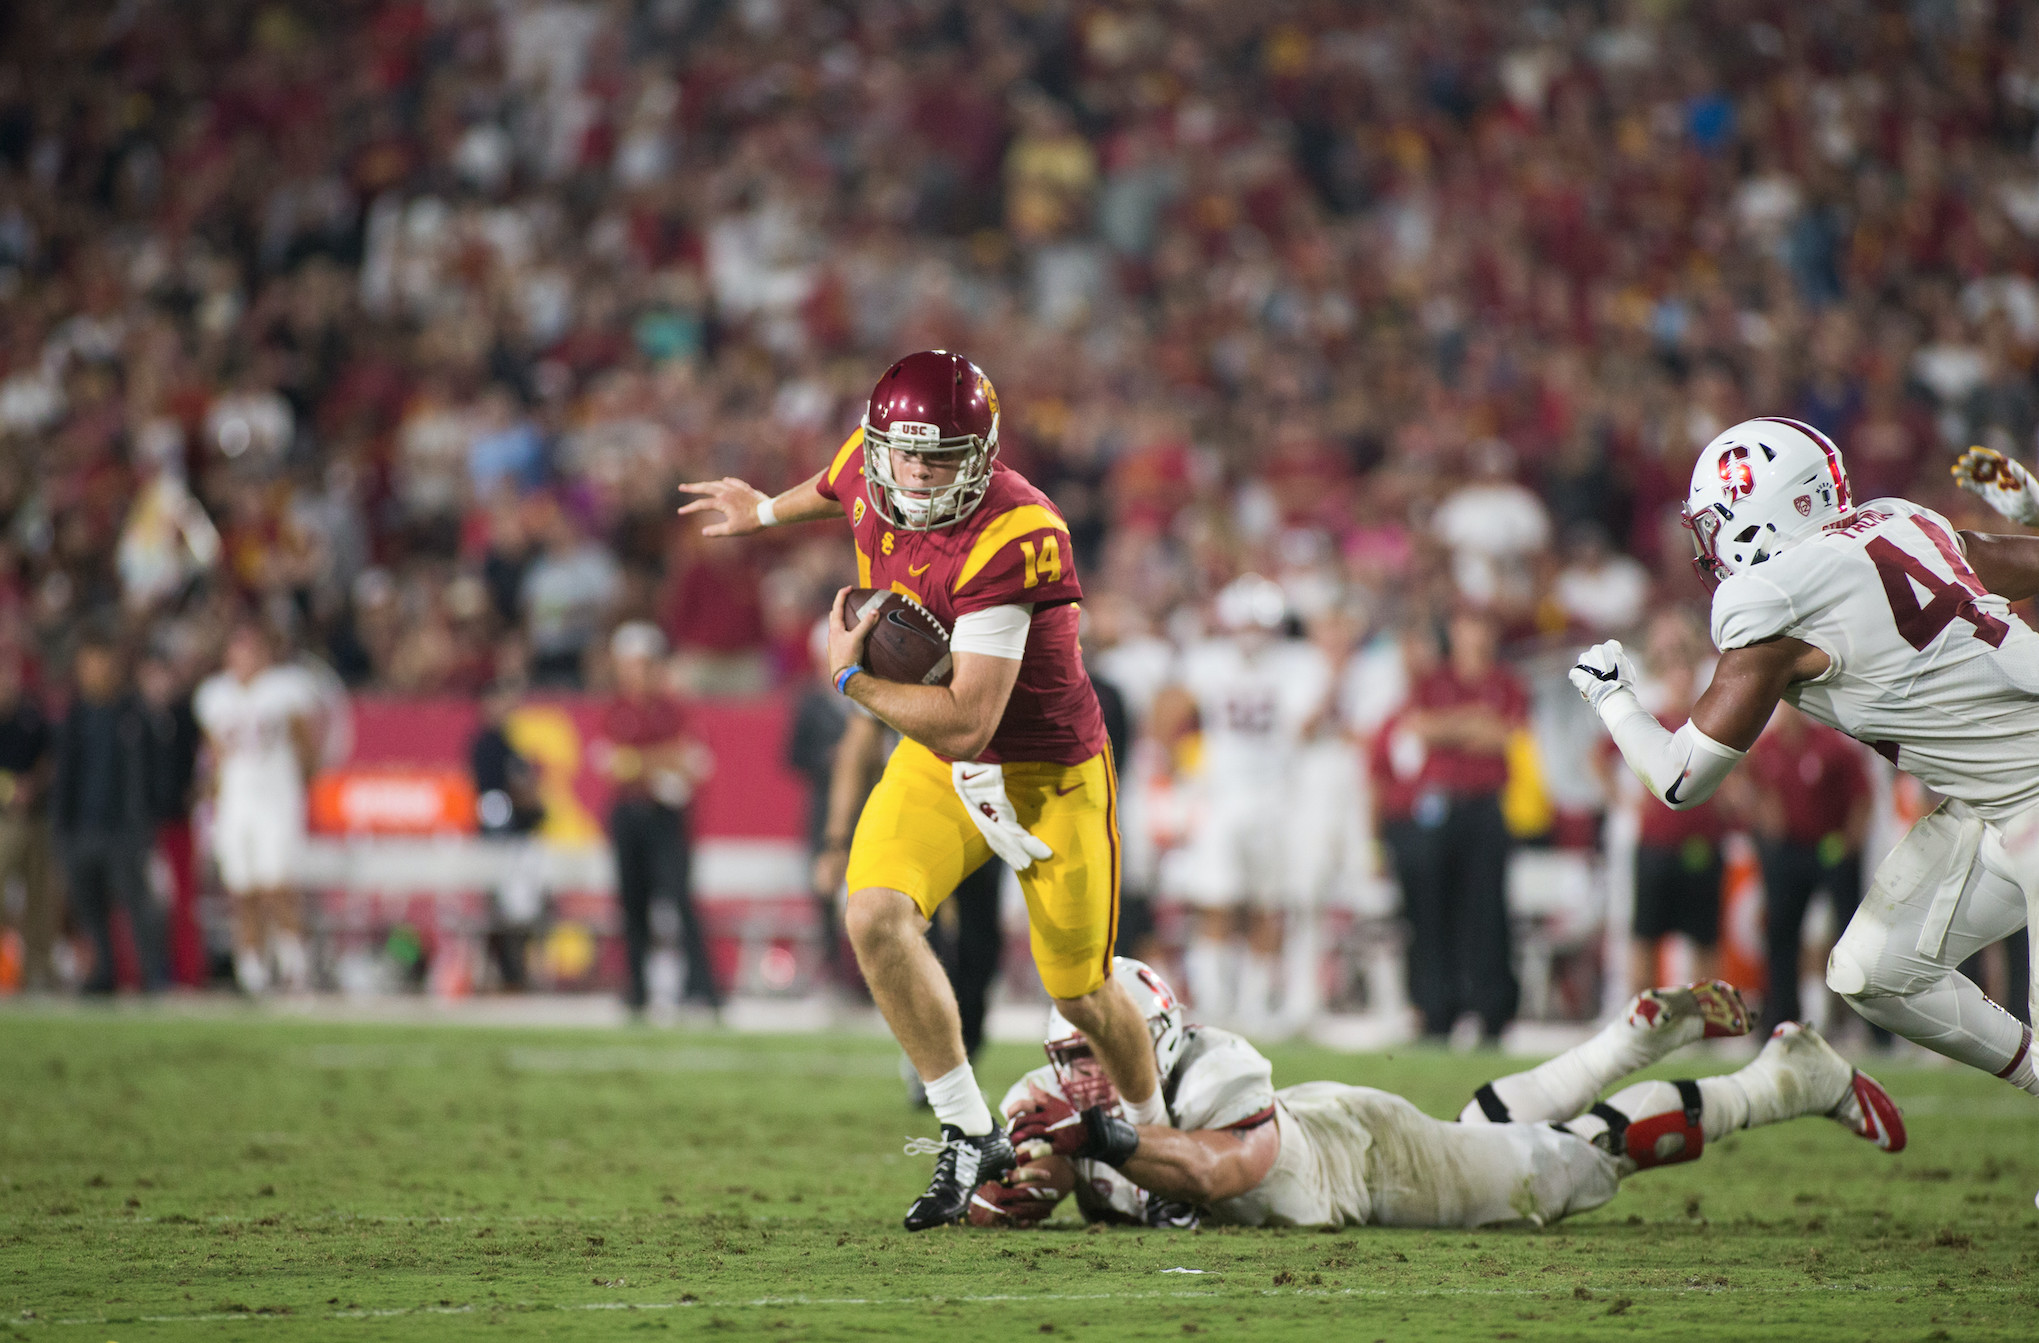 USC gets revenge, beats Texas in Rose Bowl rematch